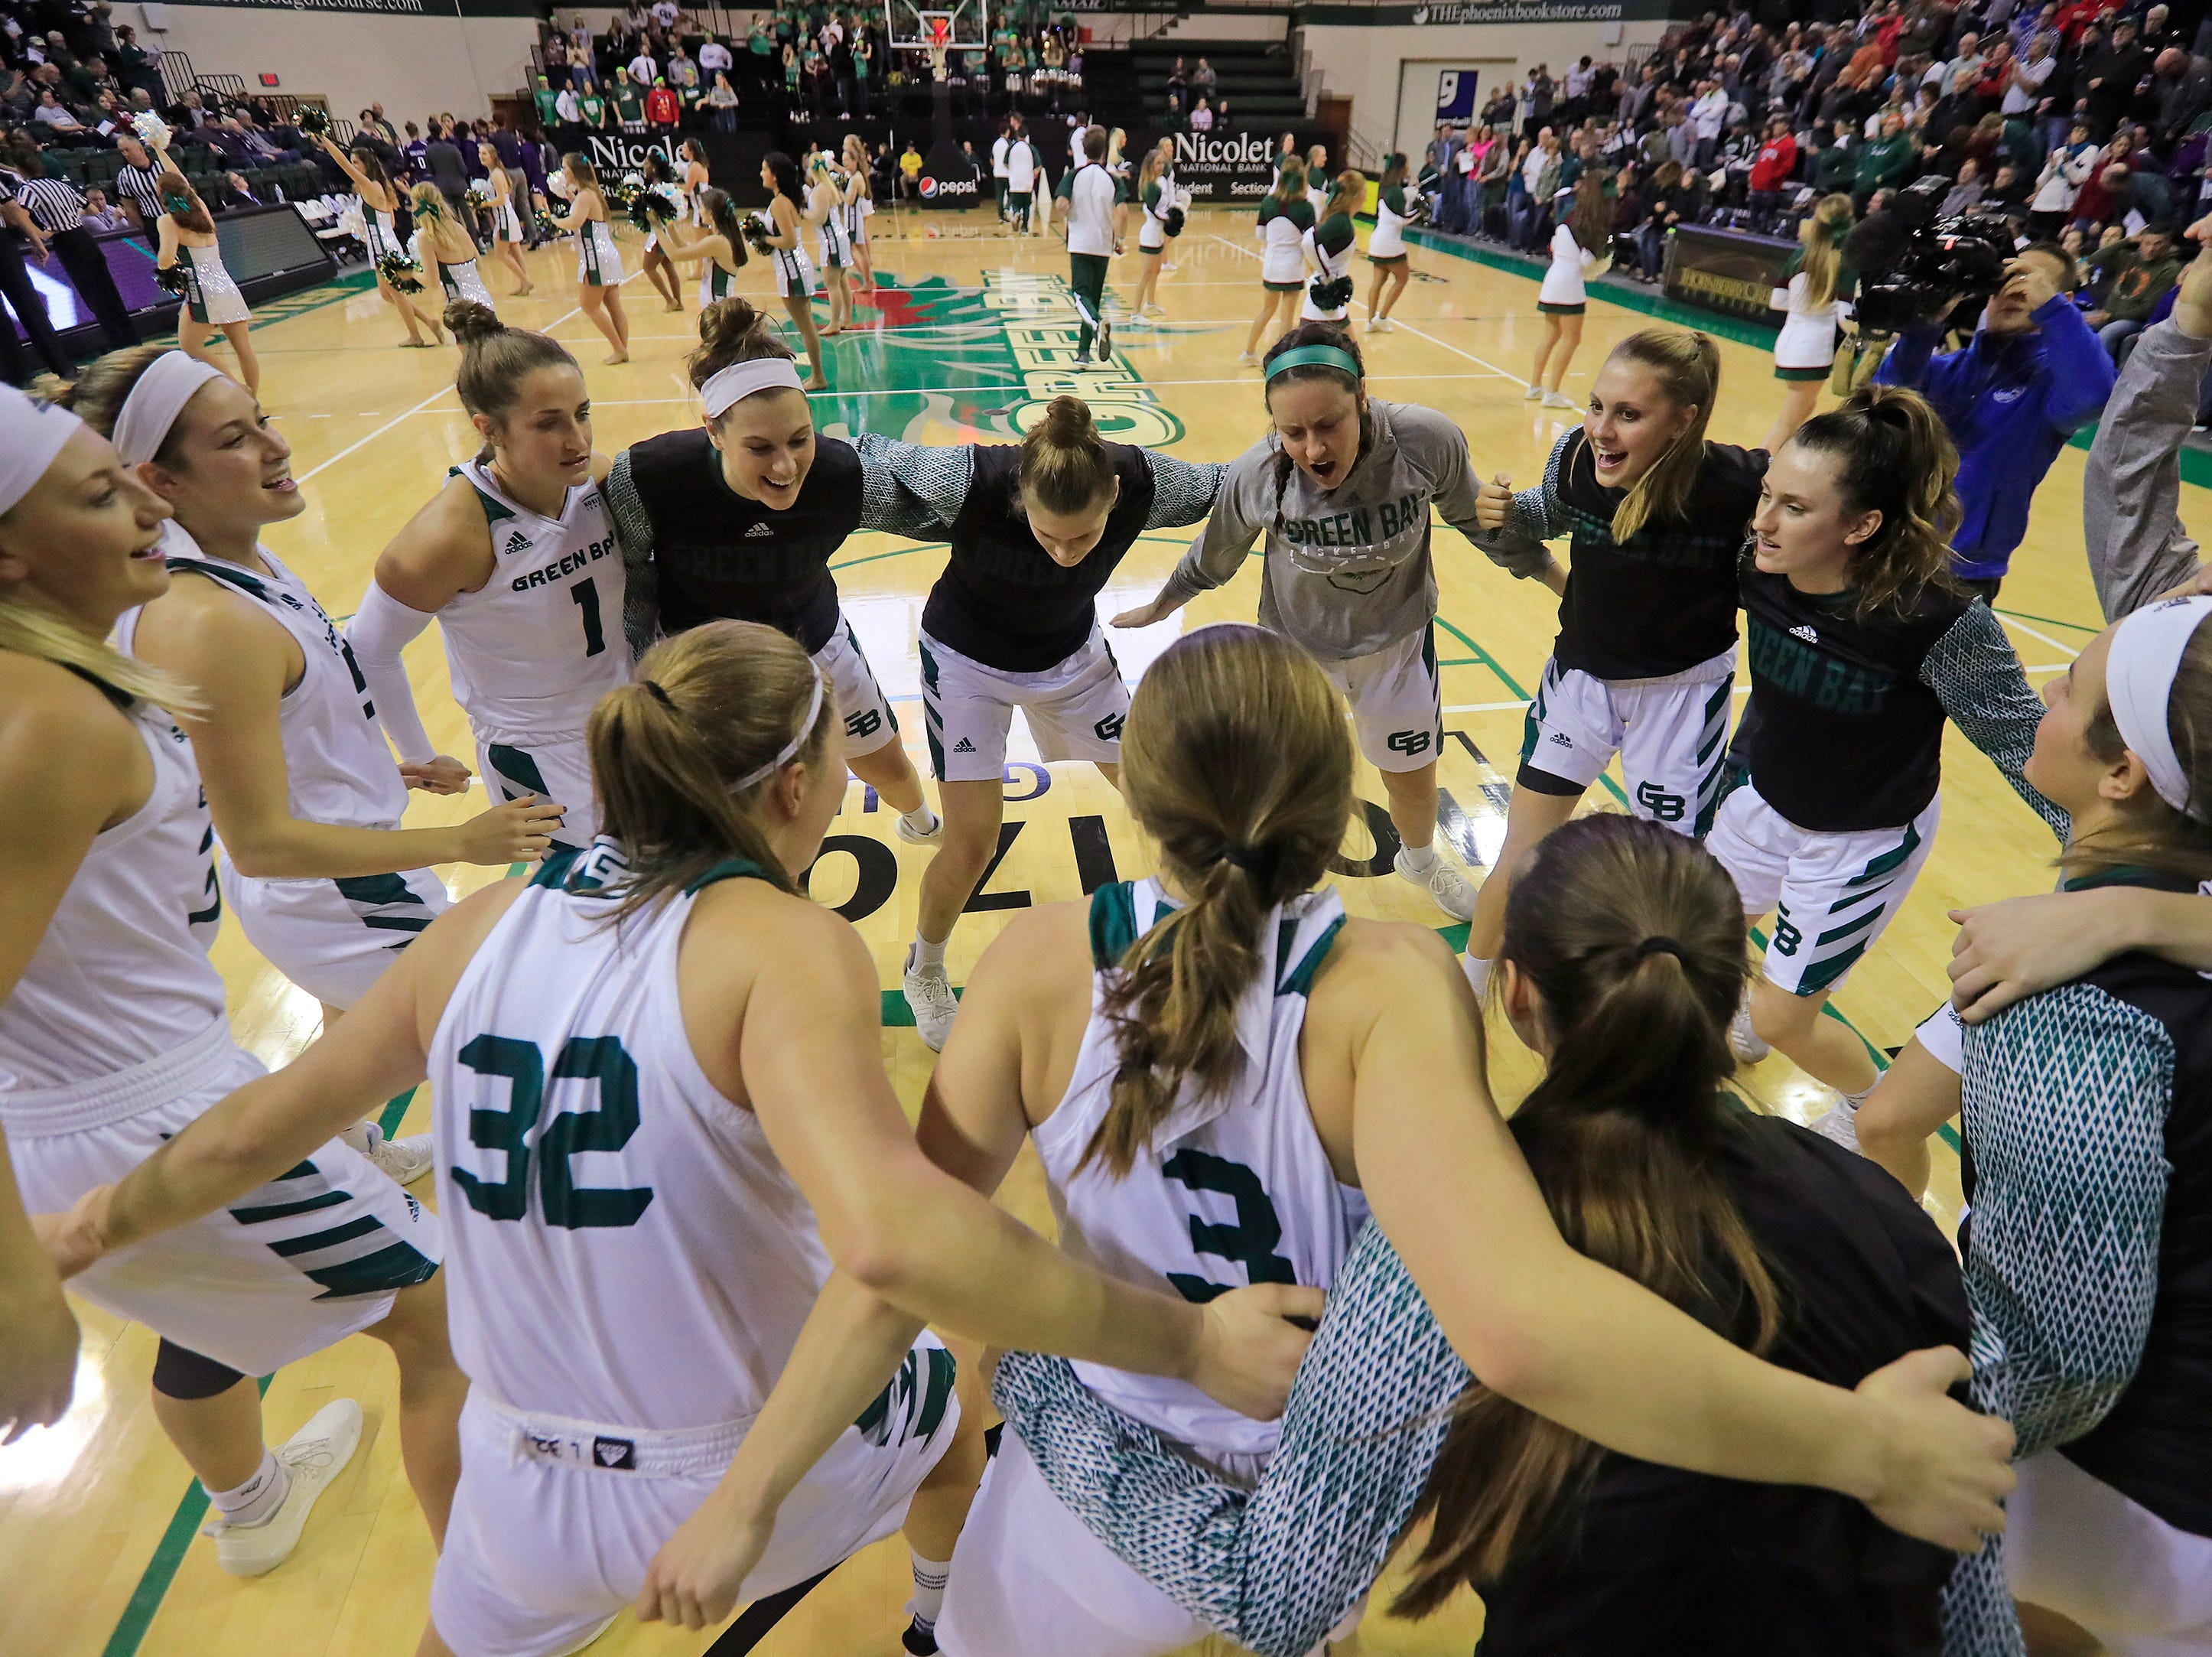 Green Bay Phoenix players huddle before facing the Northwestern Wildcats in a women's NCAA basketball game at the Kress Center on Tuesday, November 6, 2018 in Green Bay, Wis.